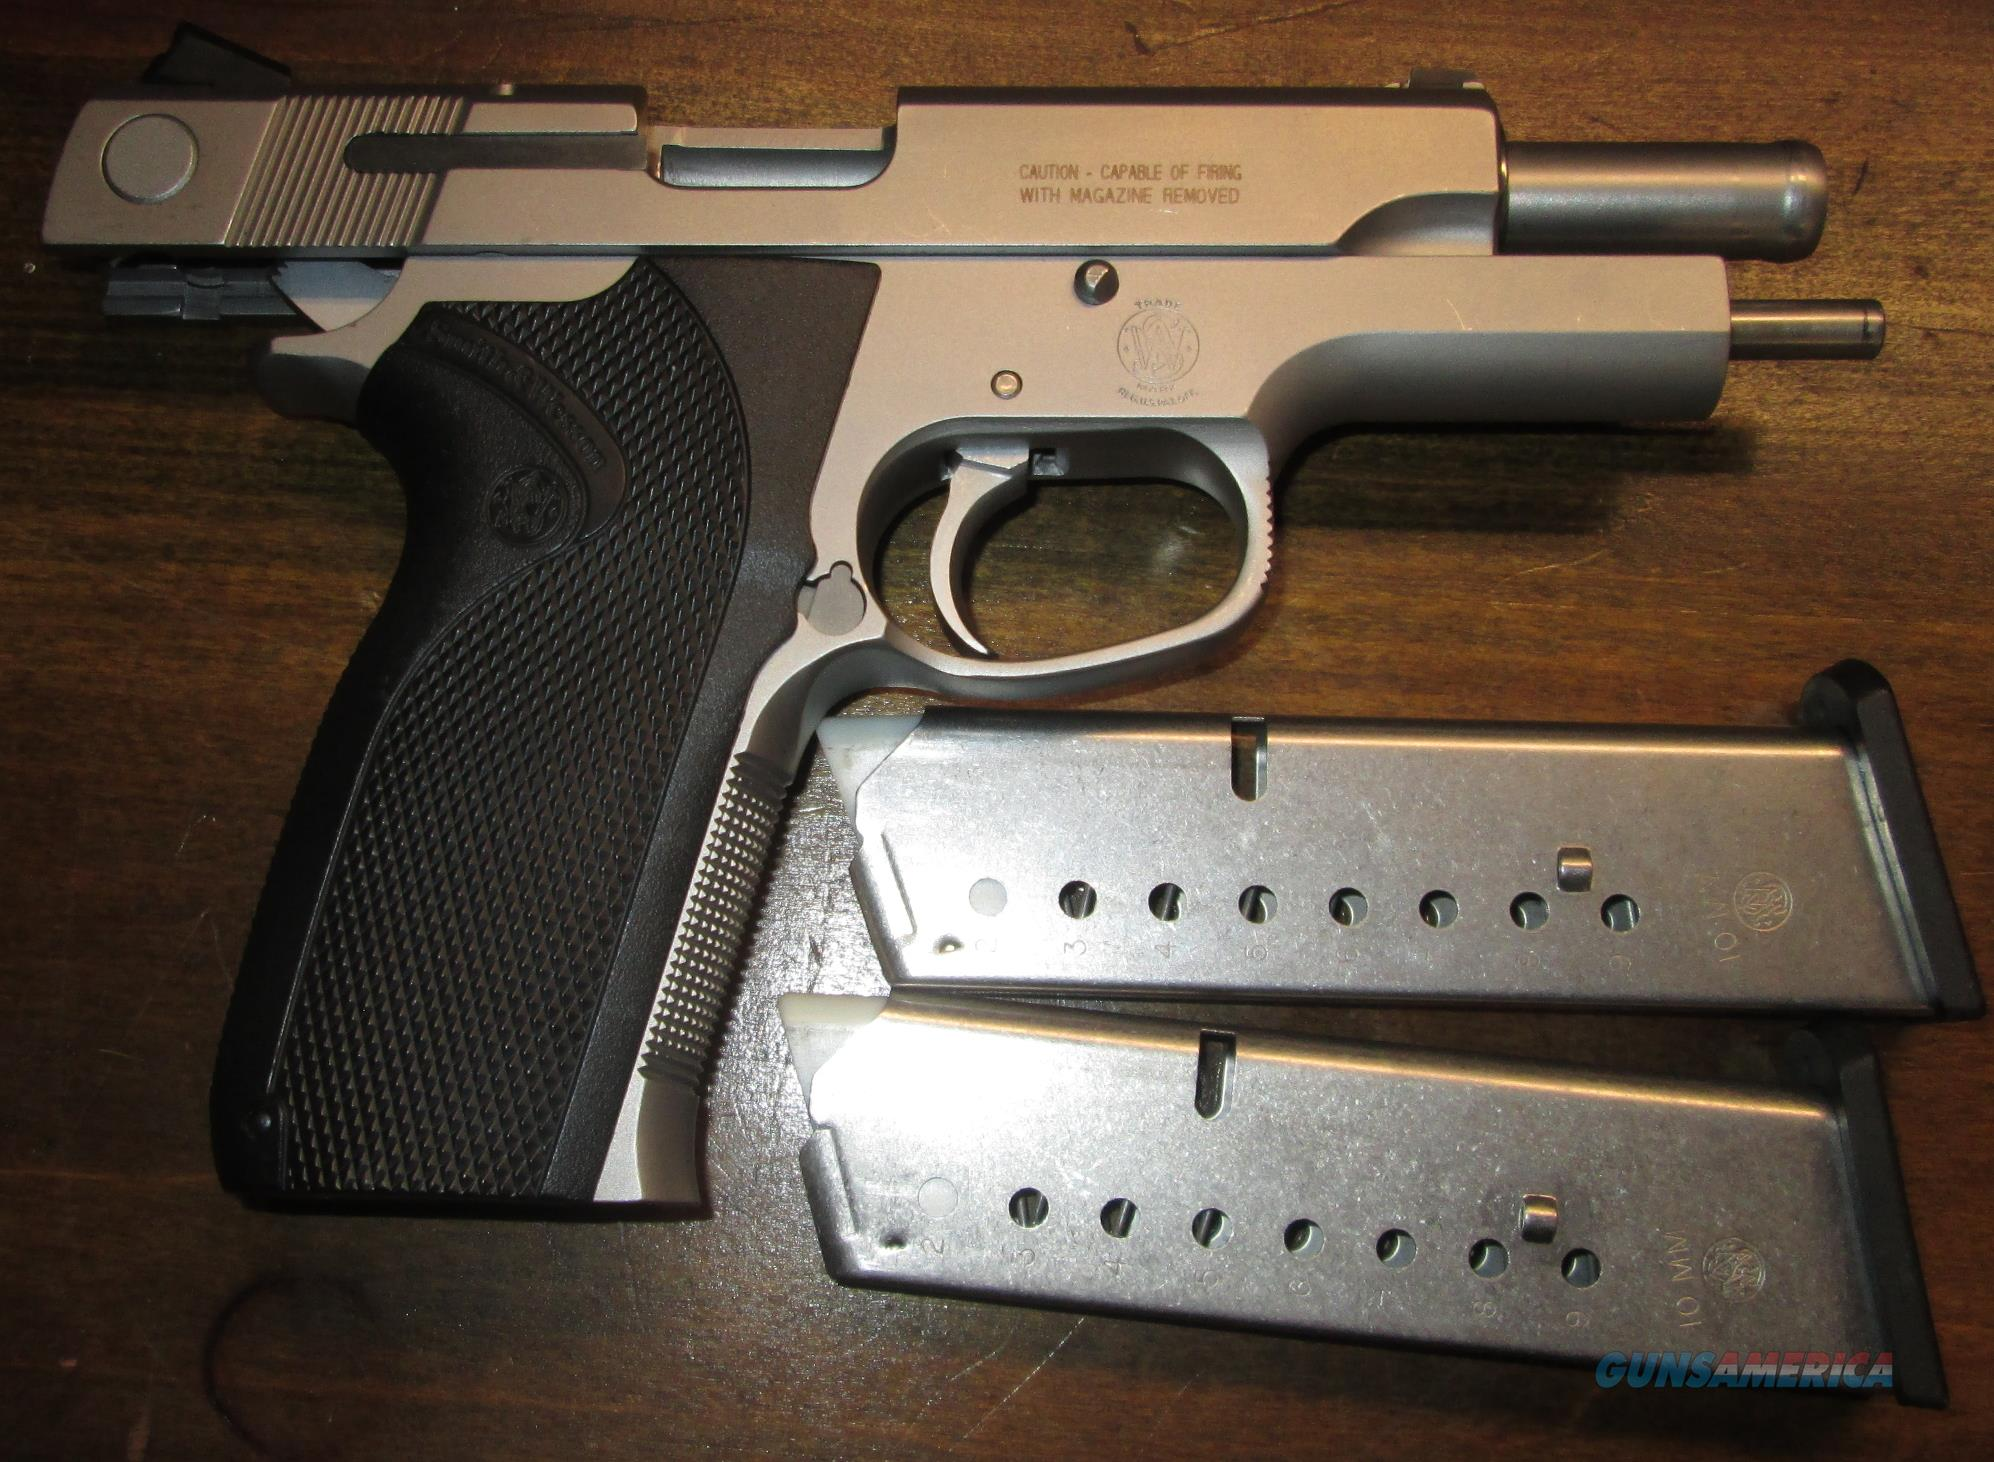 For Sale: S&W 1076 10MM GOV'T MODEL (FBI/POLICE) VERIFIED HISTORY  Guns > Pistols > Smith & Wesson Pistols - Autos > Steel Frame